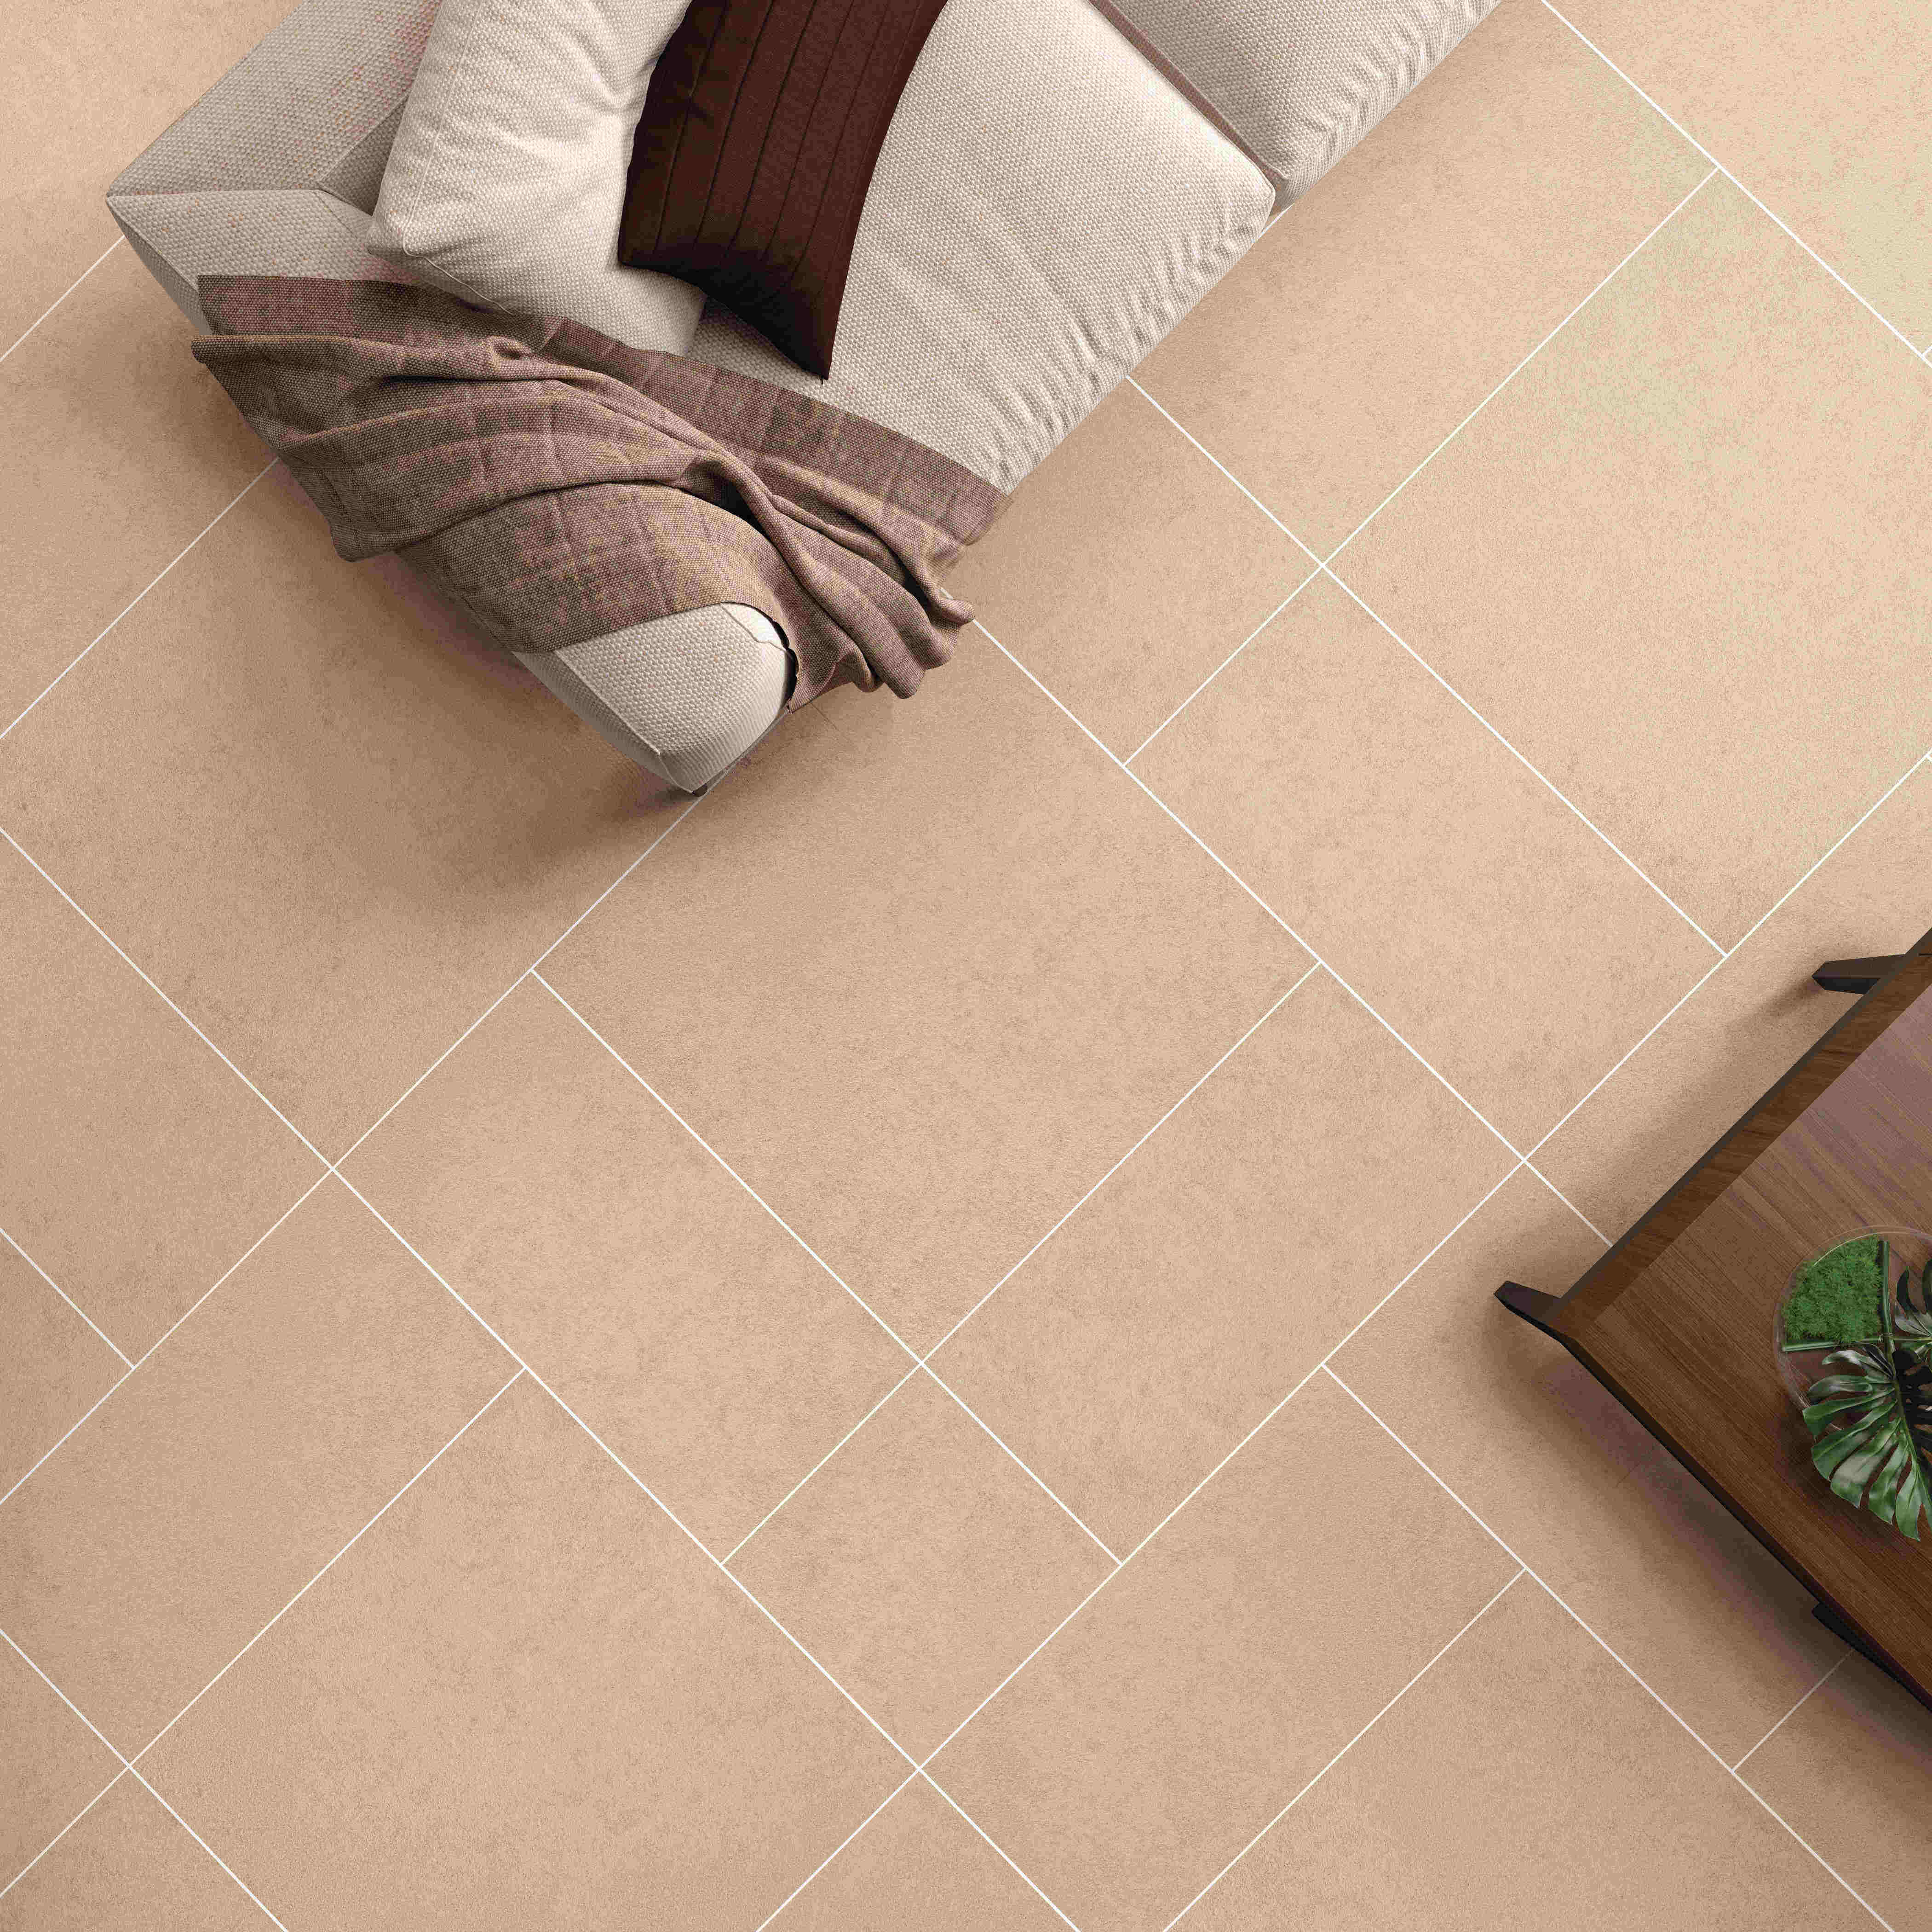 curved ceramic wall tiles outdoor tiles for driveway retro floor tiles